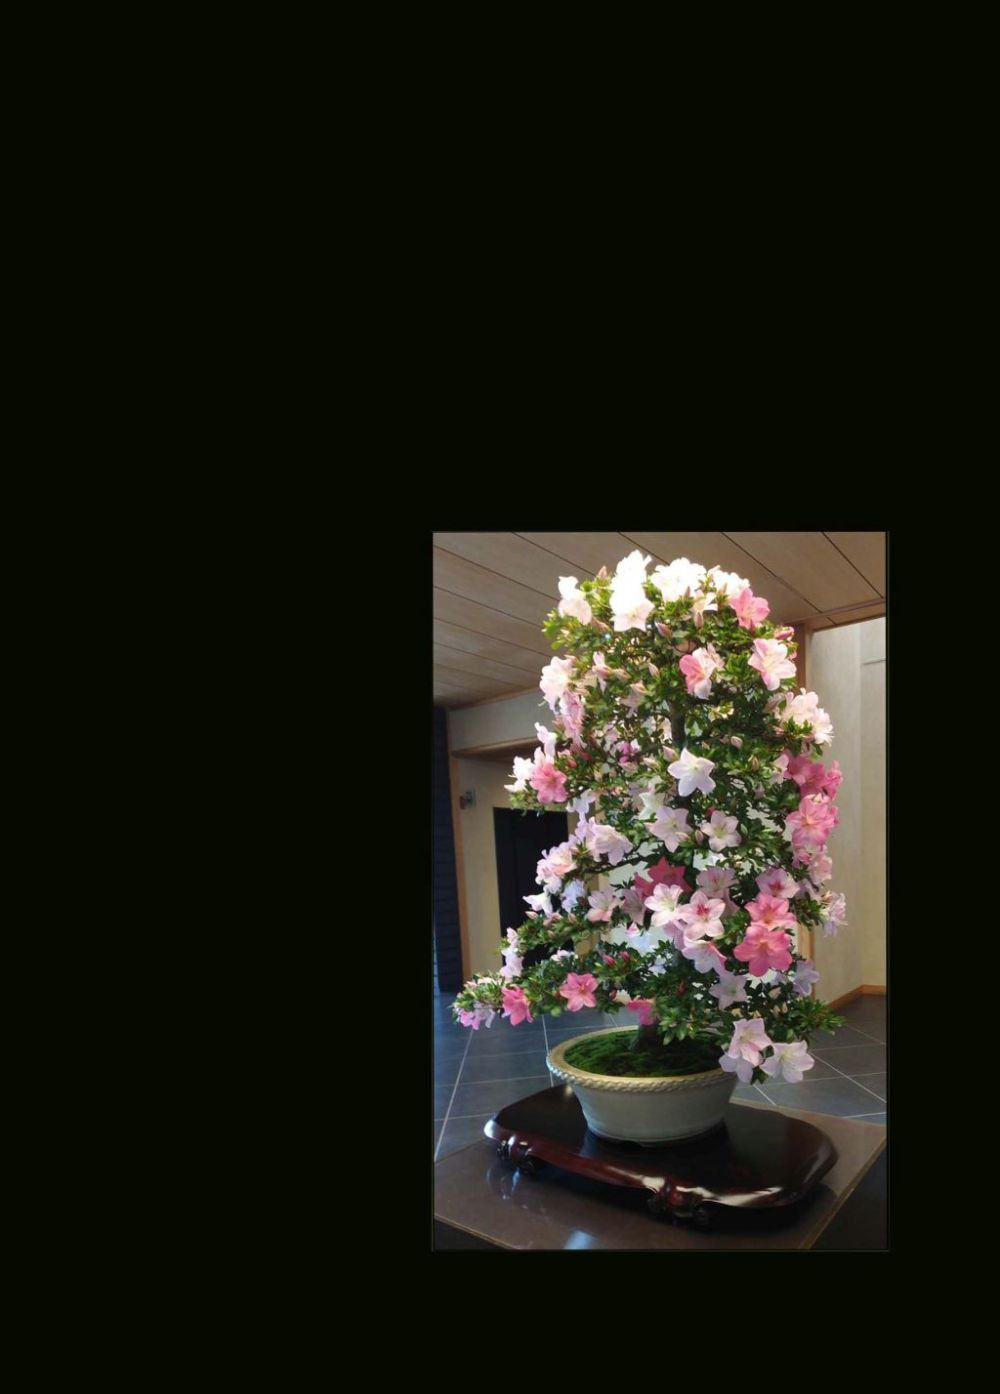 Bonsai - Azalea (Rhododendron) in Full Bloom